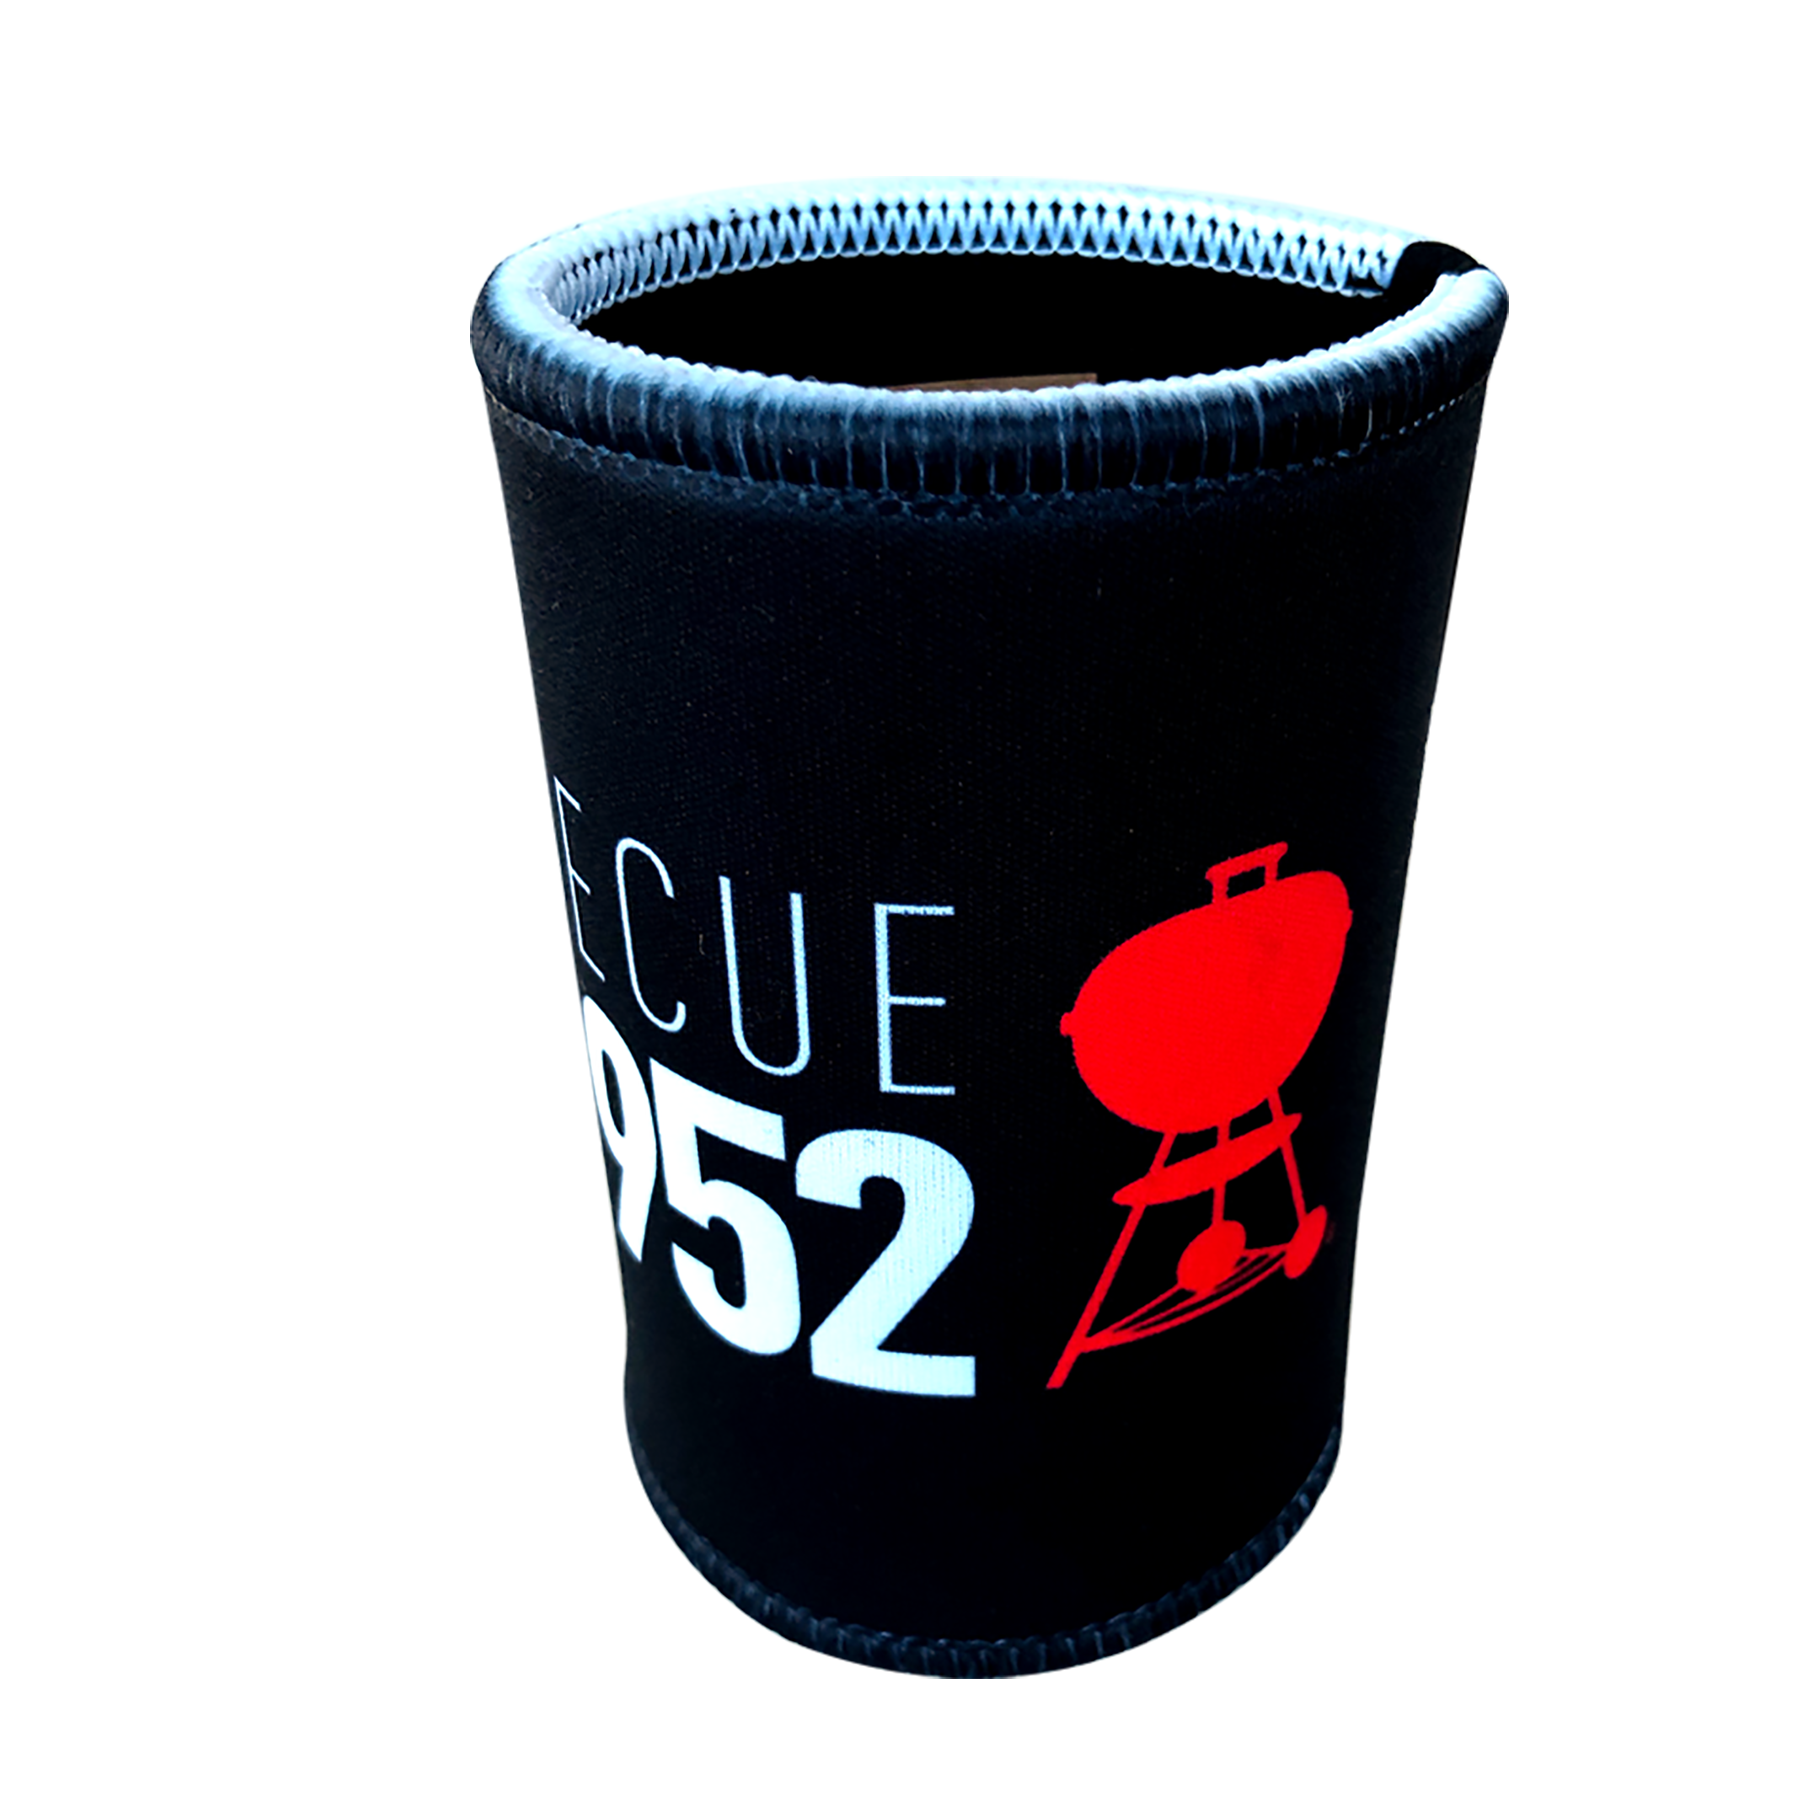 18026-real-bbq-stubby-holder-1_1800-x-18001